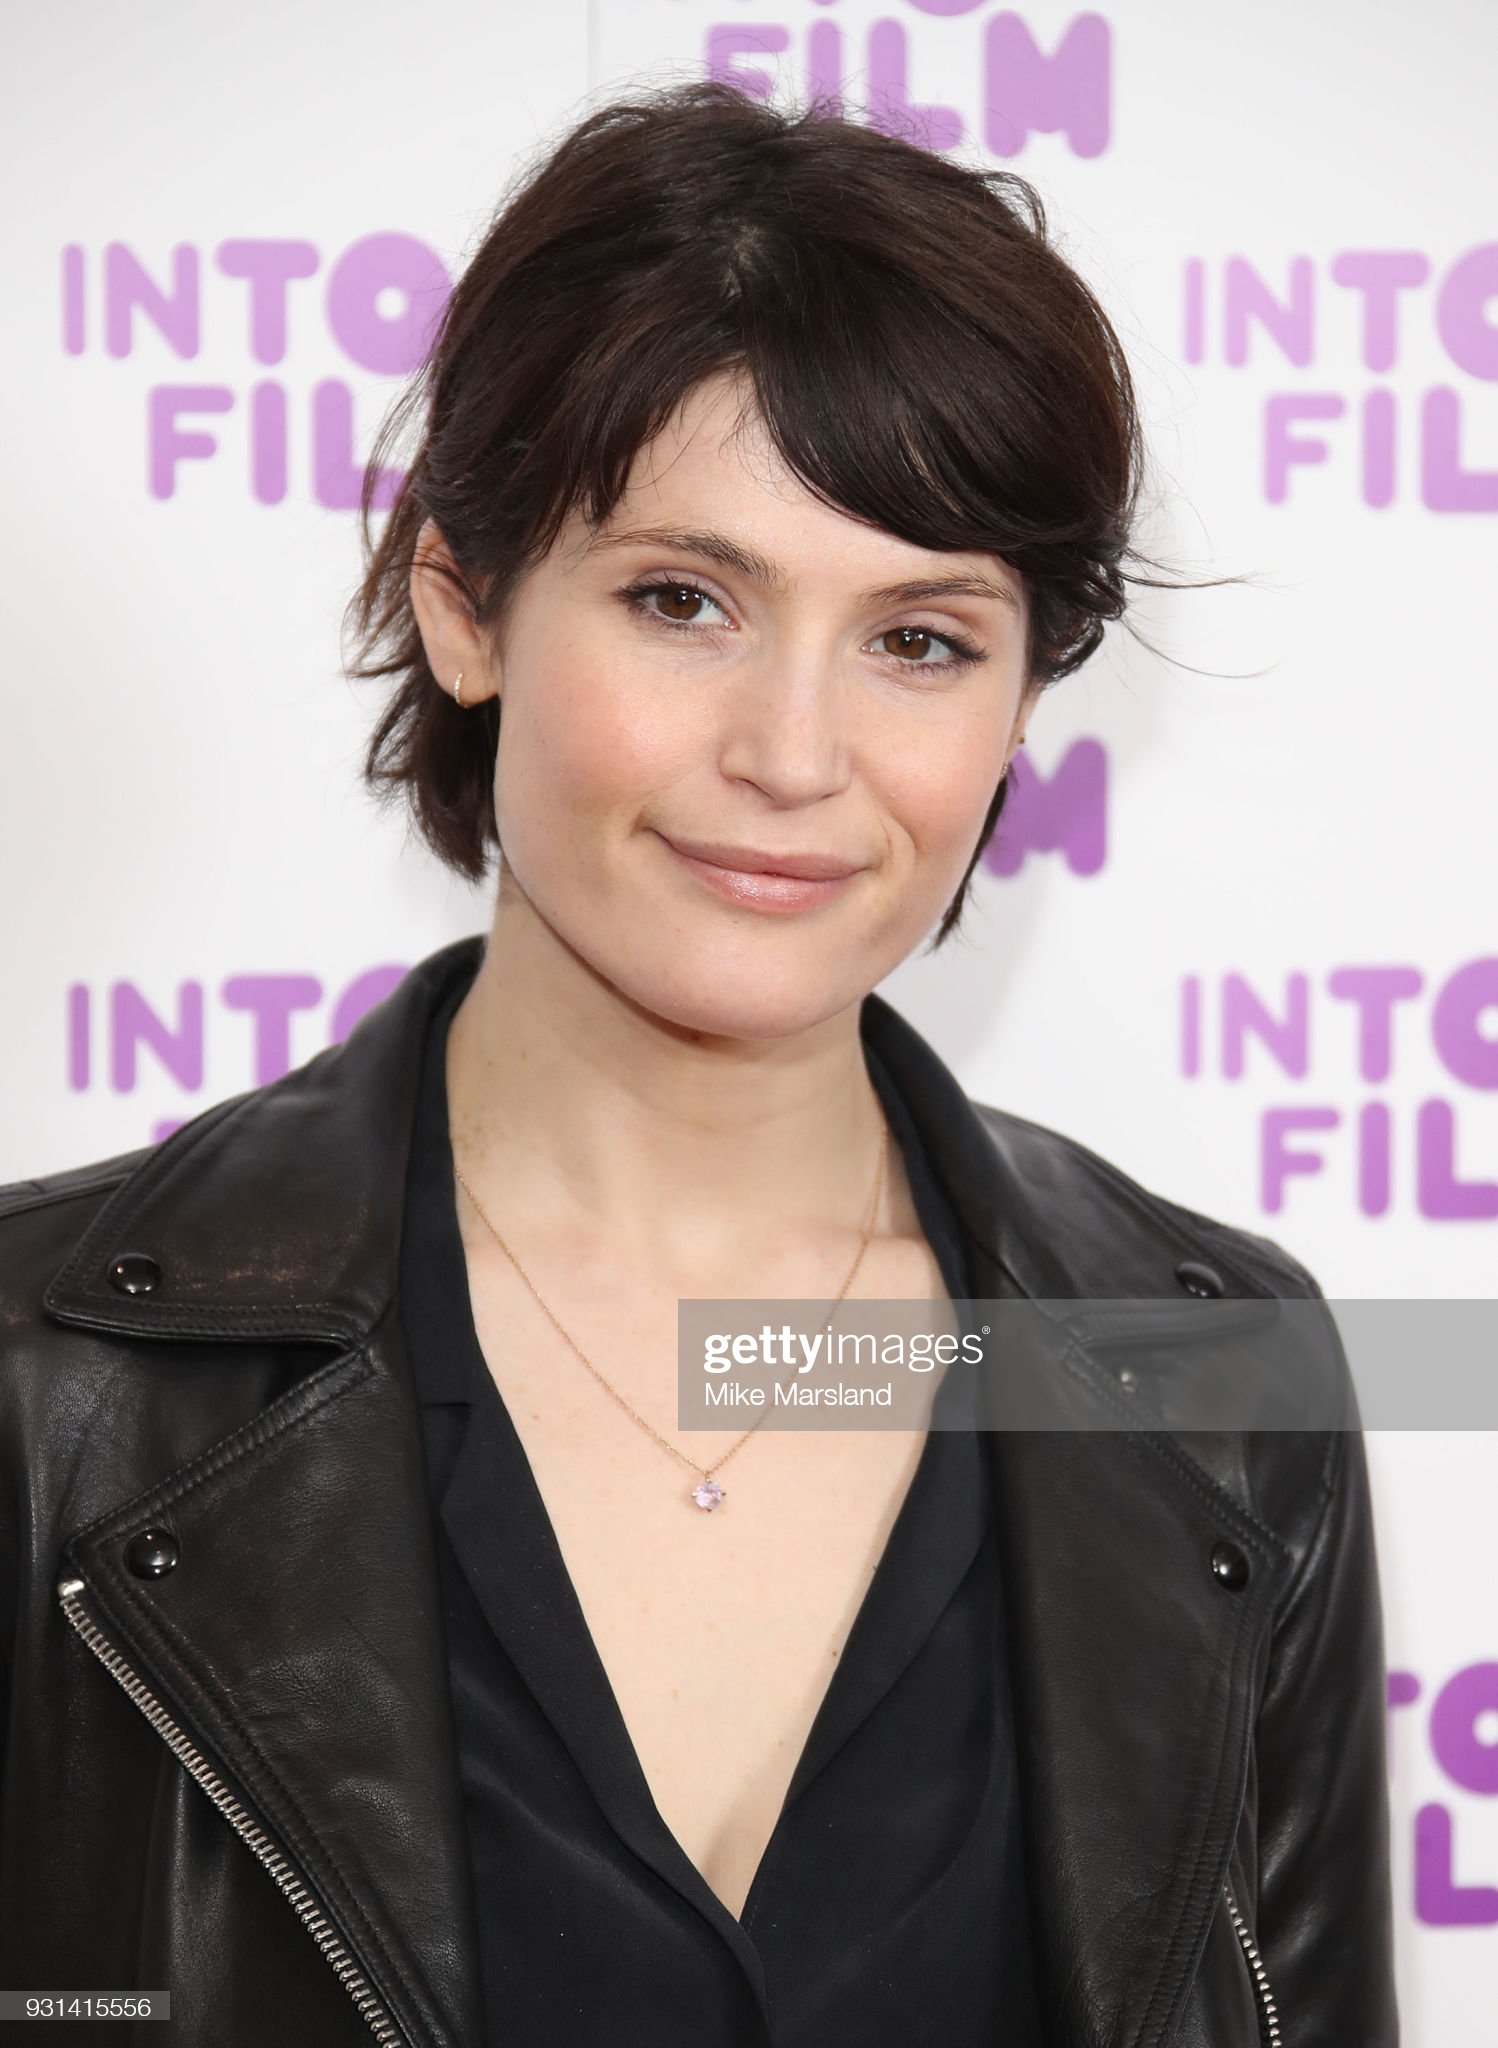 gemma-arterton-attends-the-into-film-awards-at-bfi-southbank-on-march-picture-id931415556